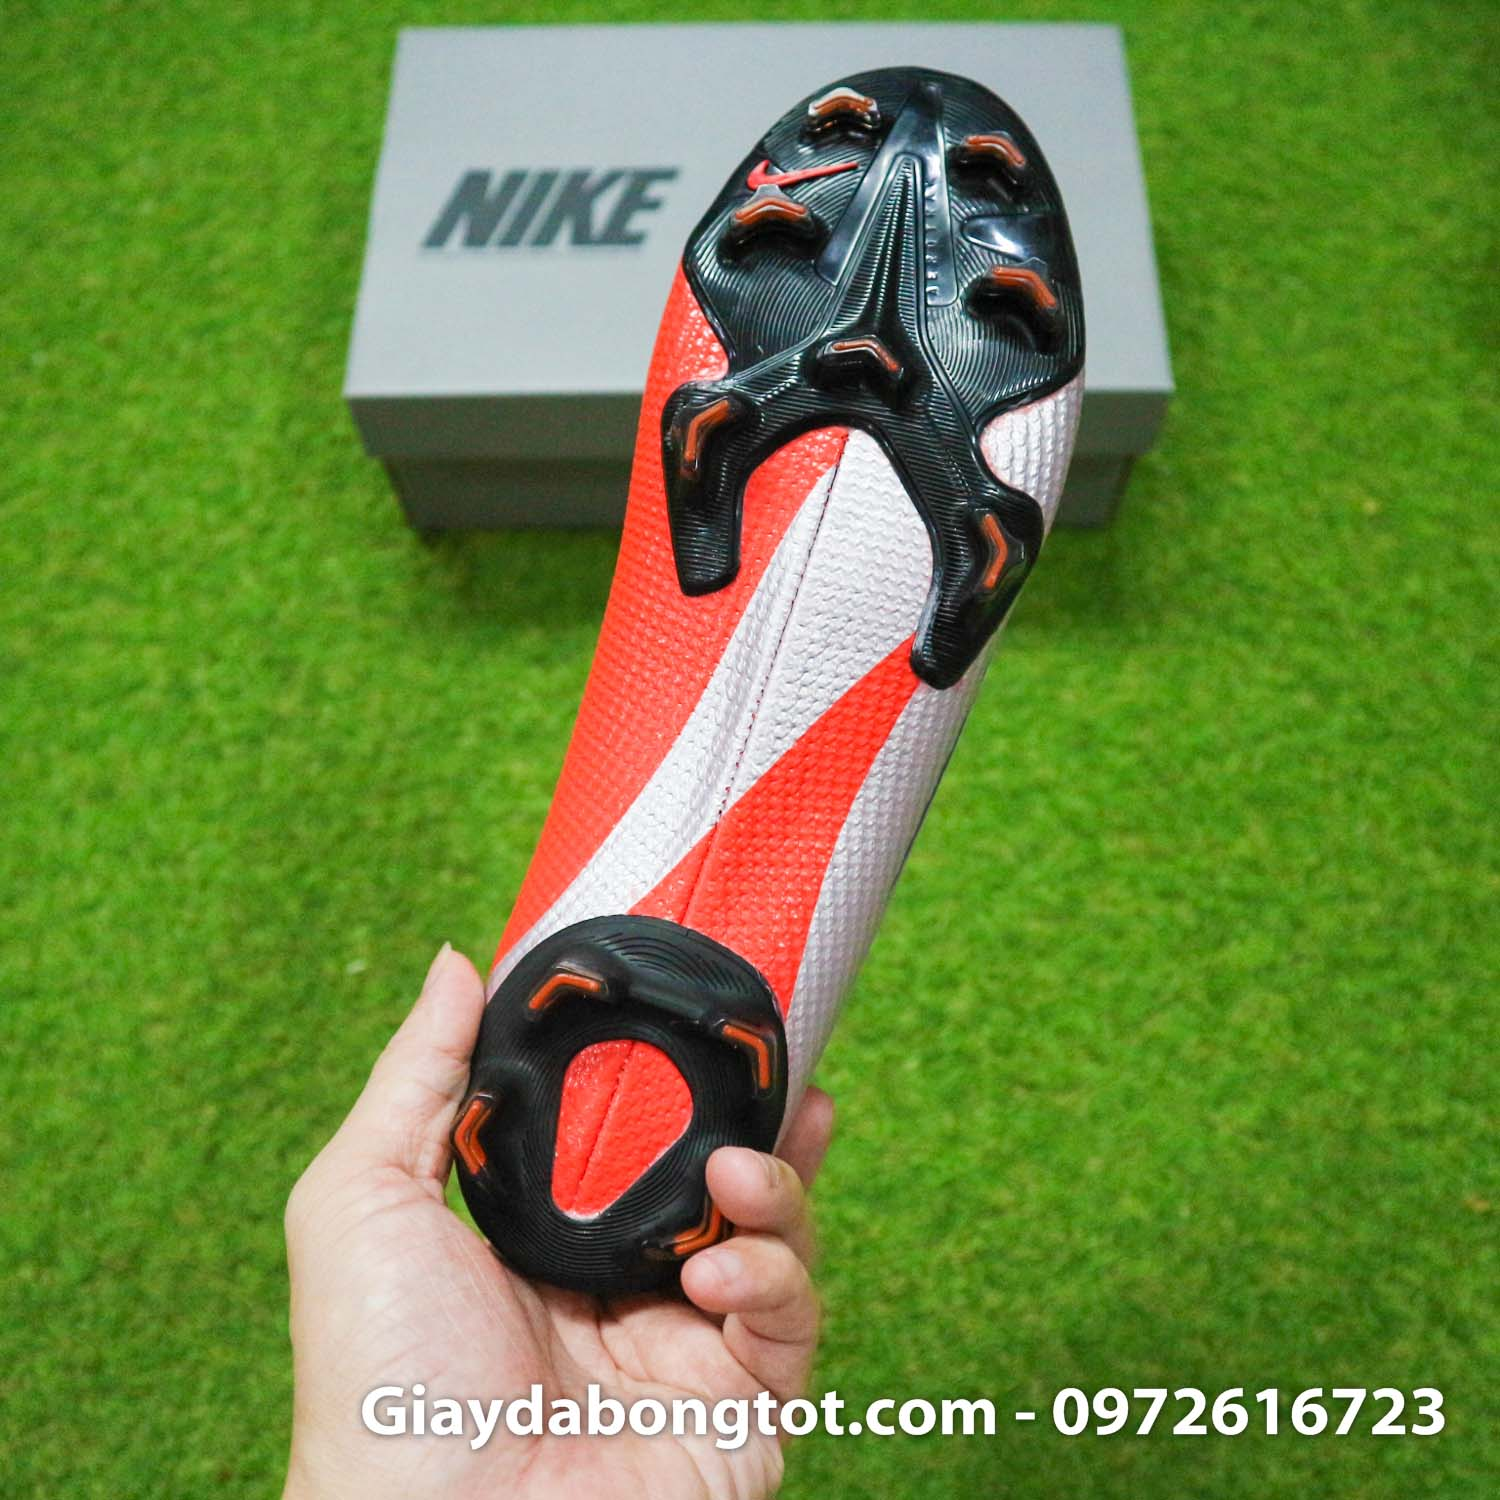 Giay bong da nike mercurial vapor 13 elite fg do bac future dna (15)